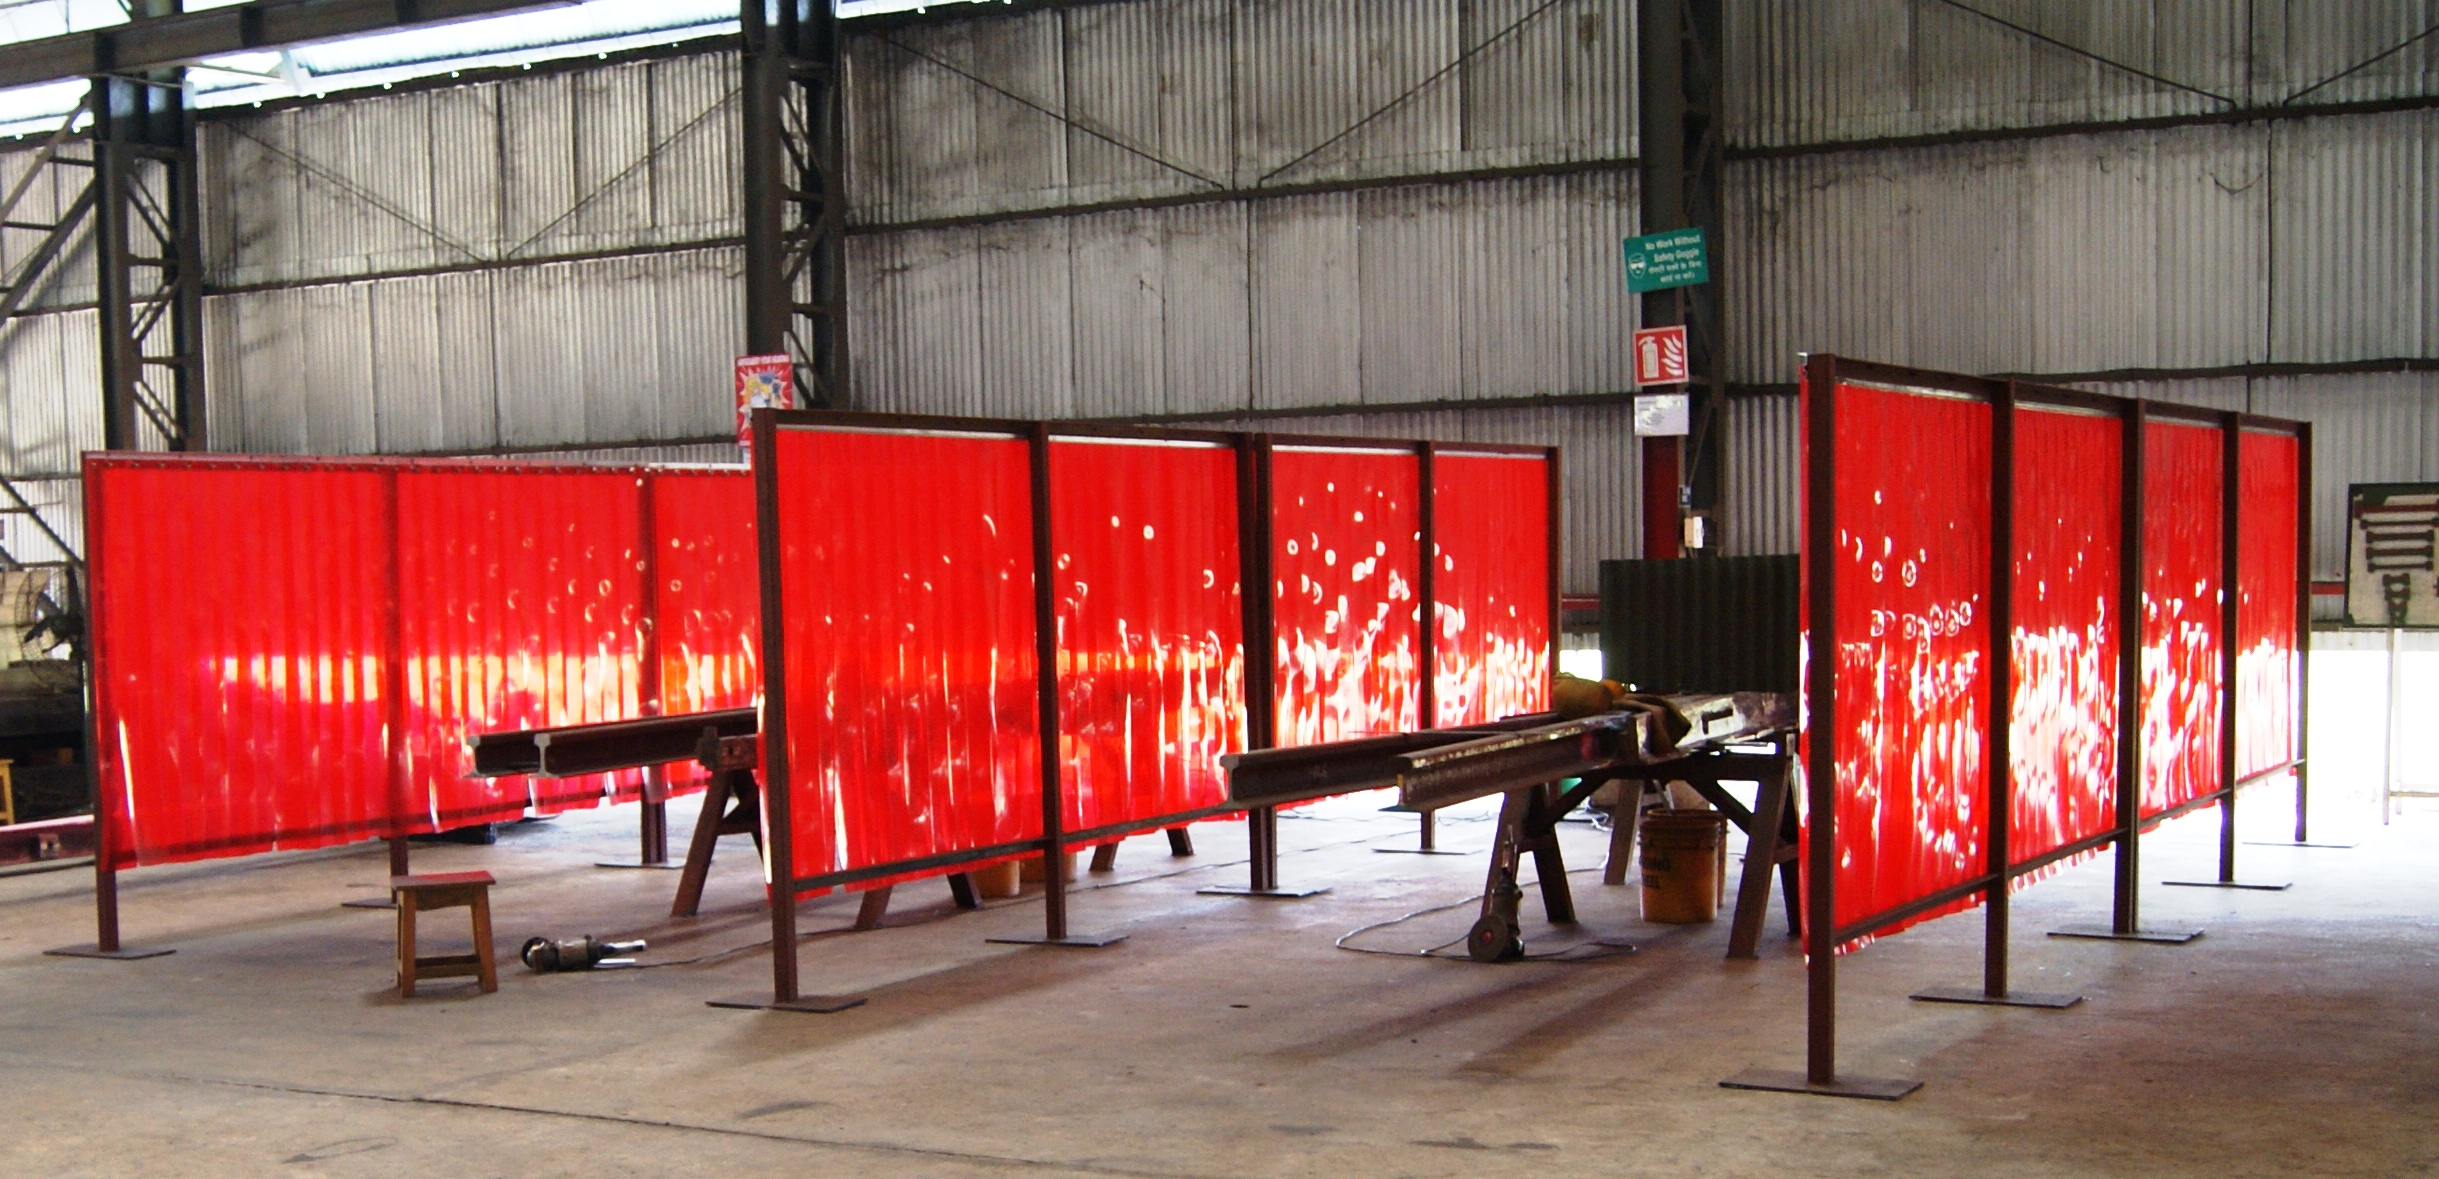 xarwc red curtain unimig welding product